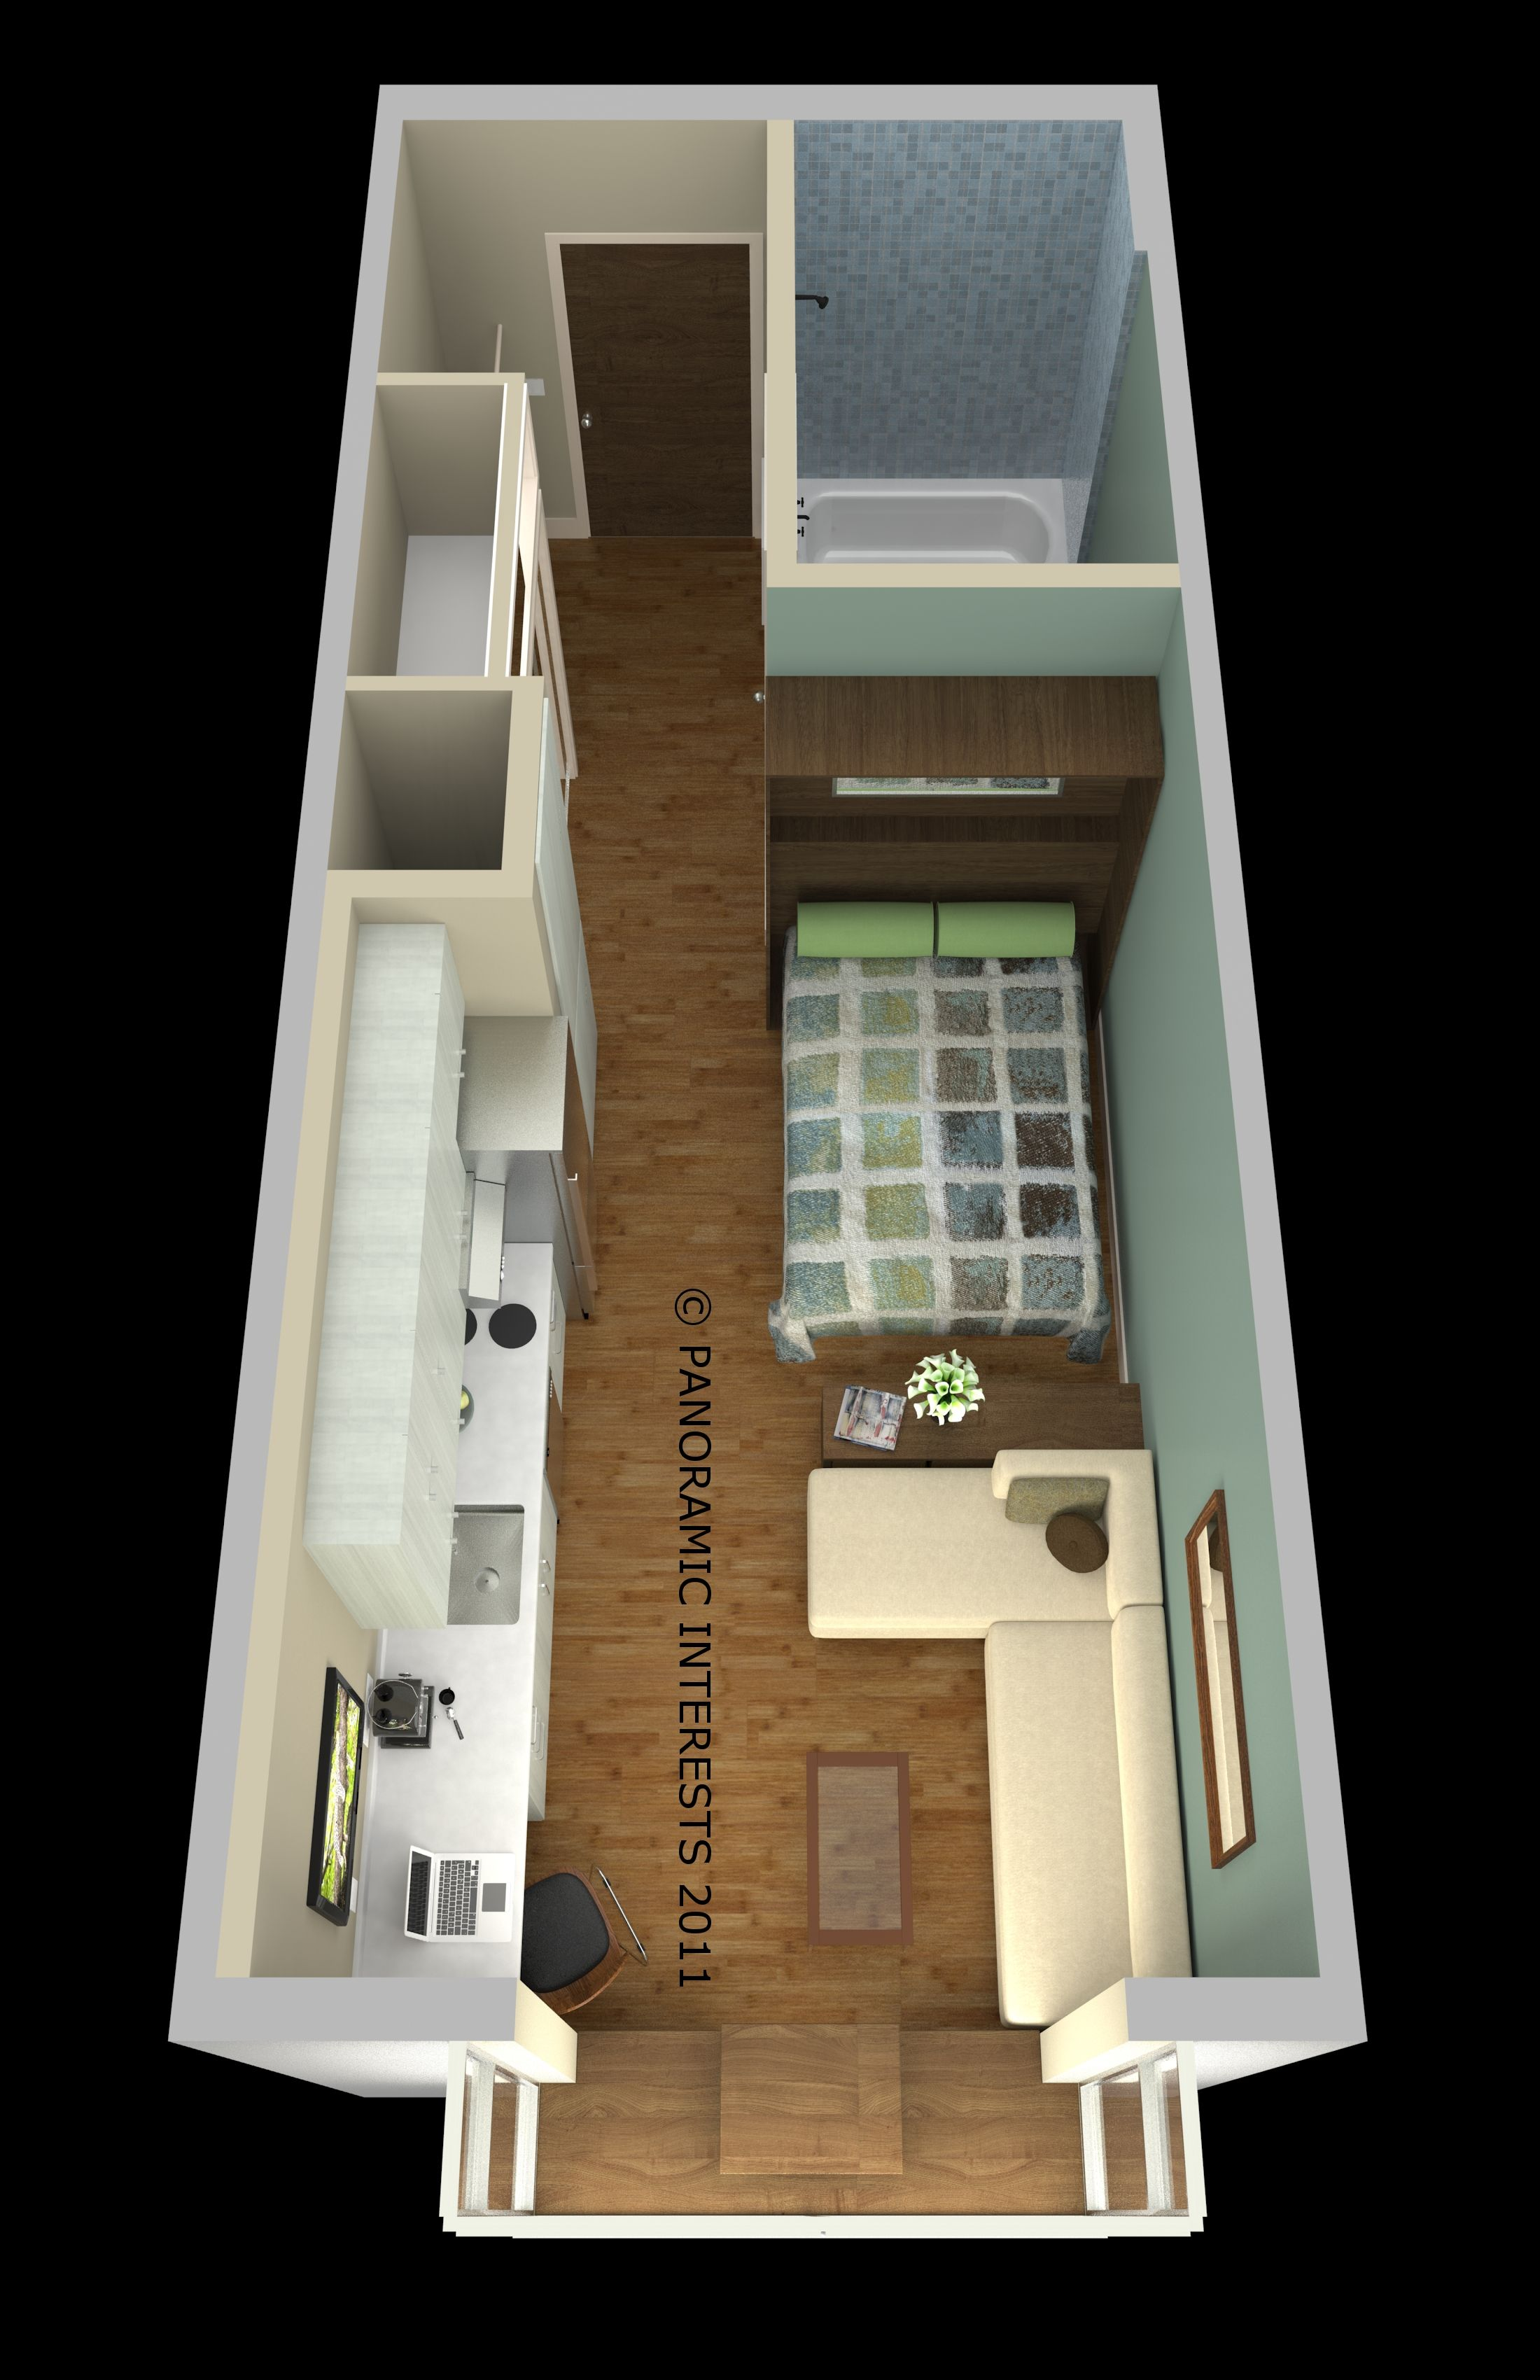 Bedroom Bathroom Loft Apartment Floor Plan Loft